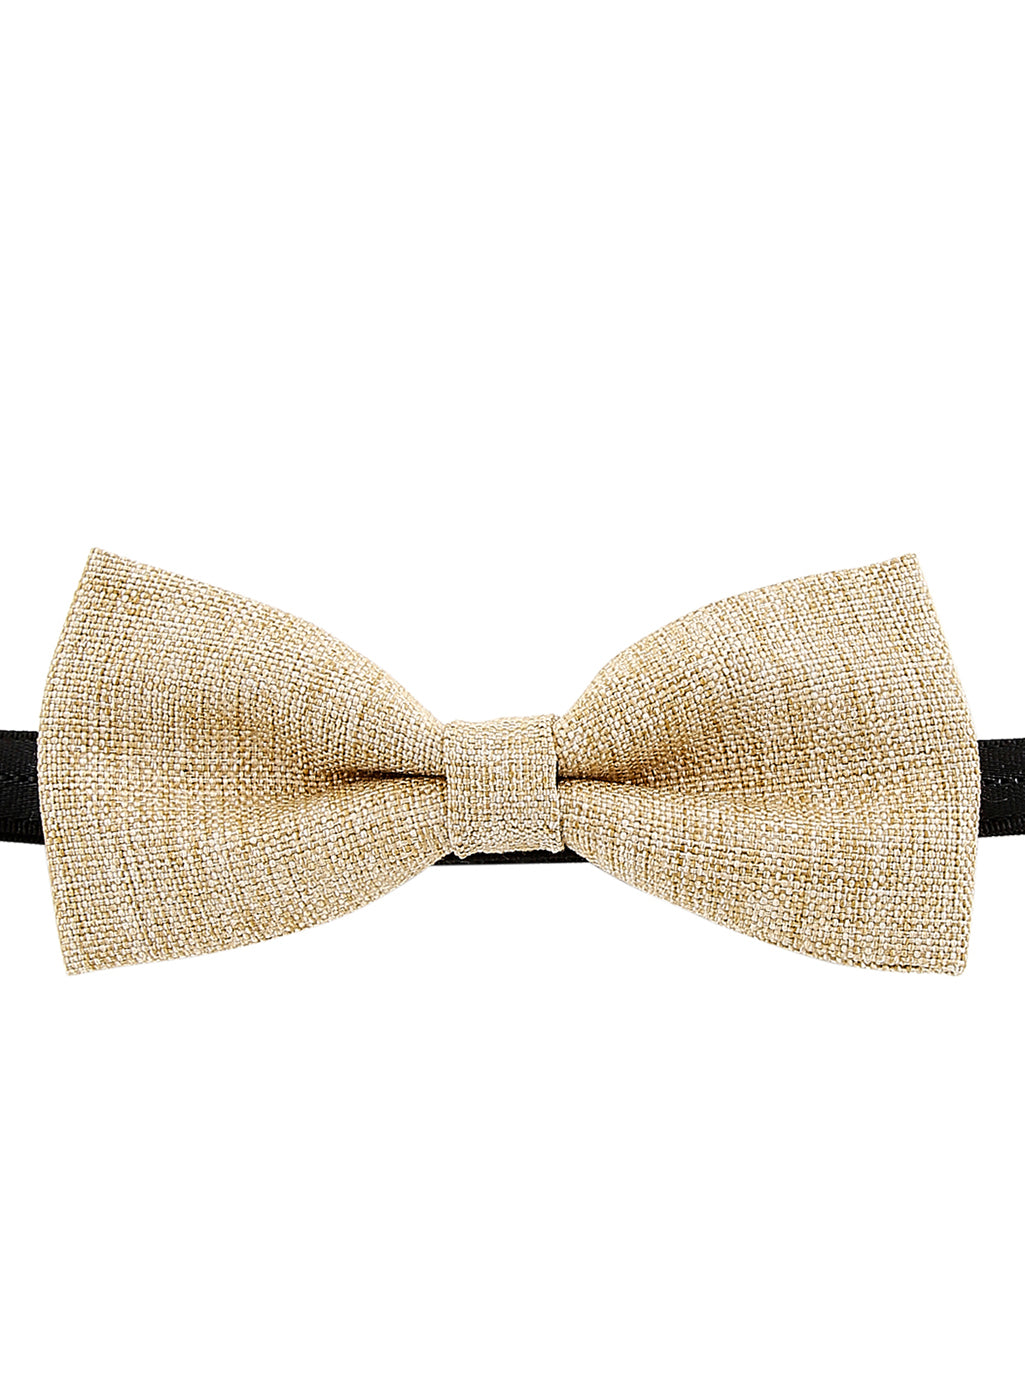 ZIDO Bow Tie for Men BJT012